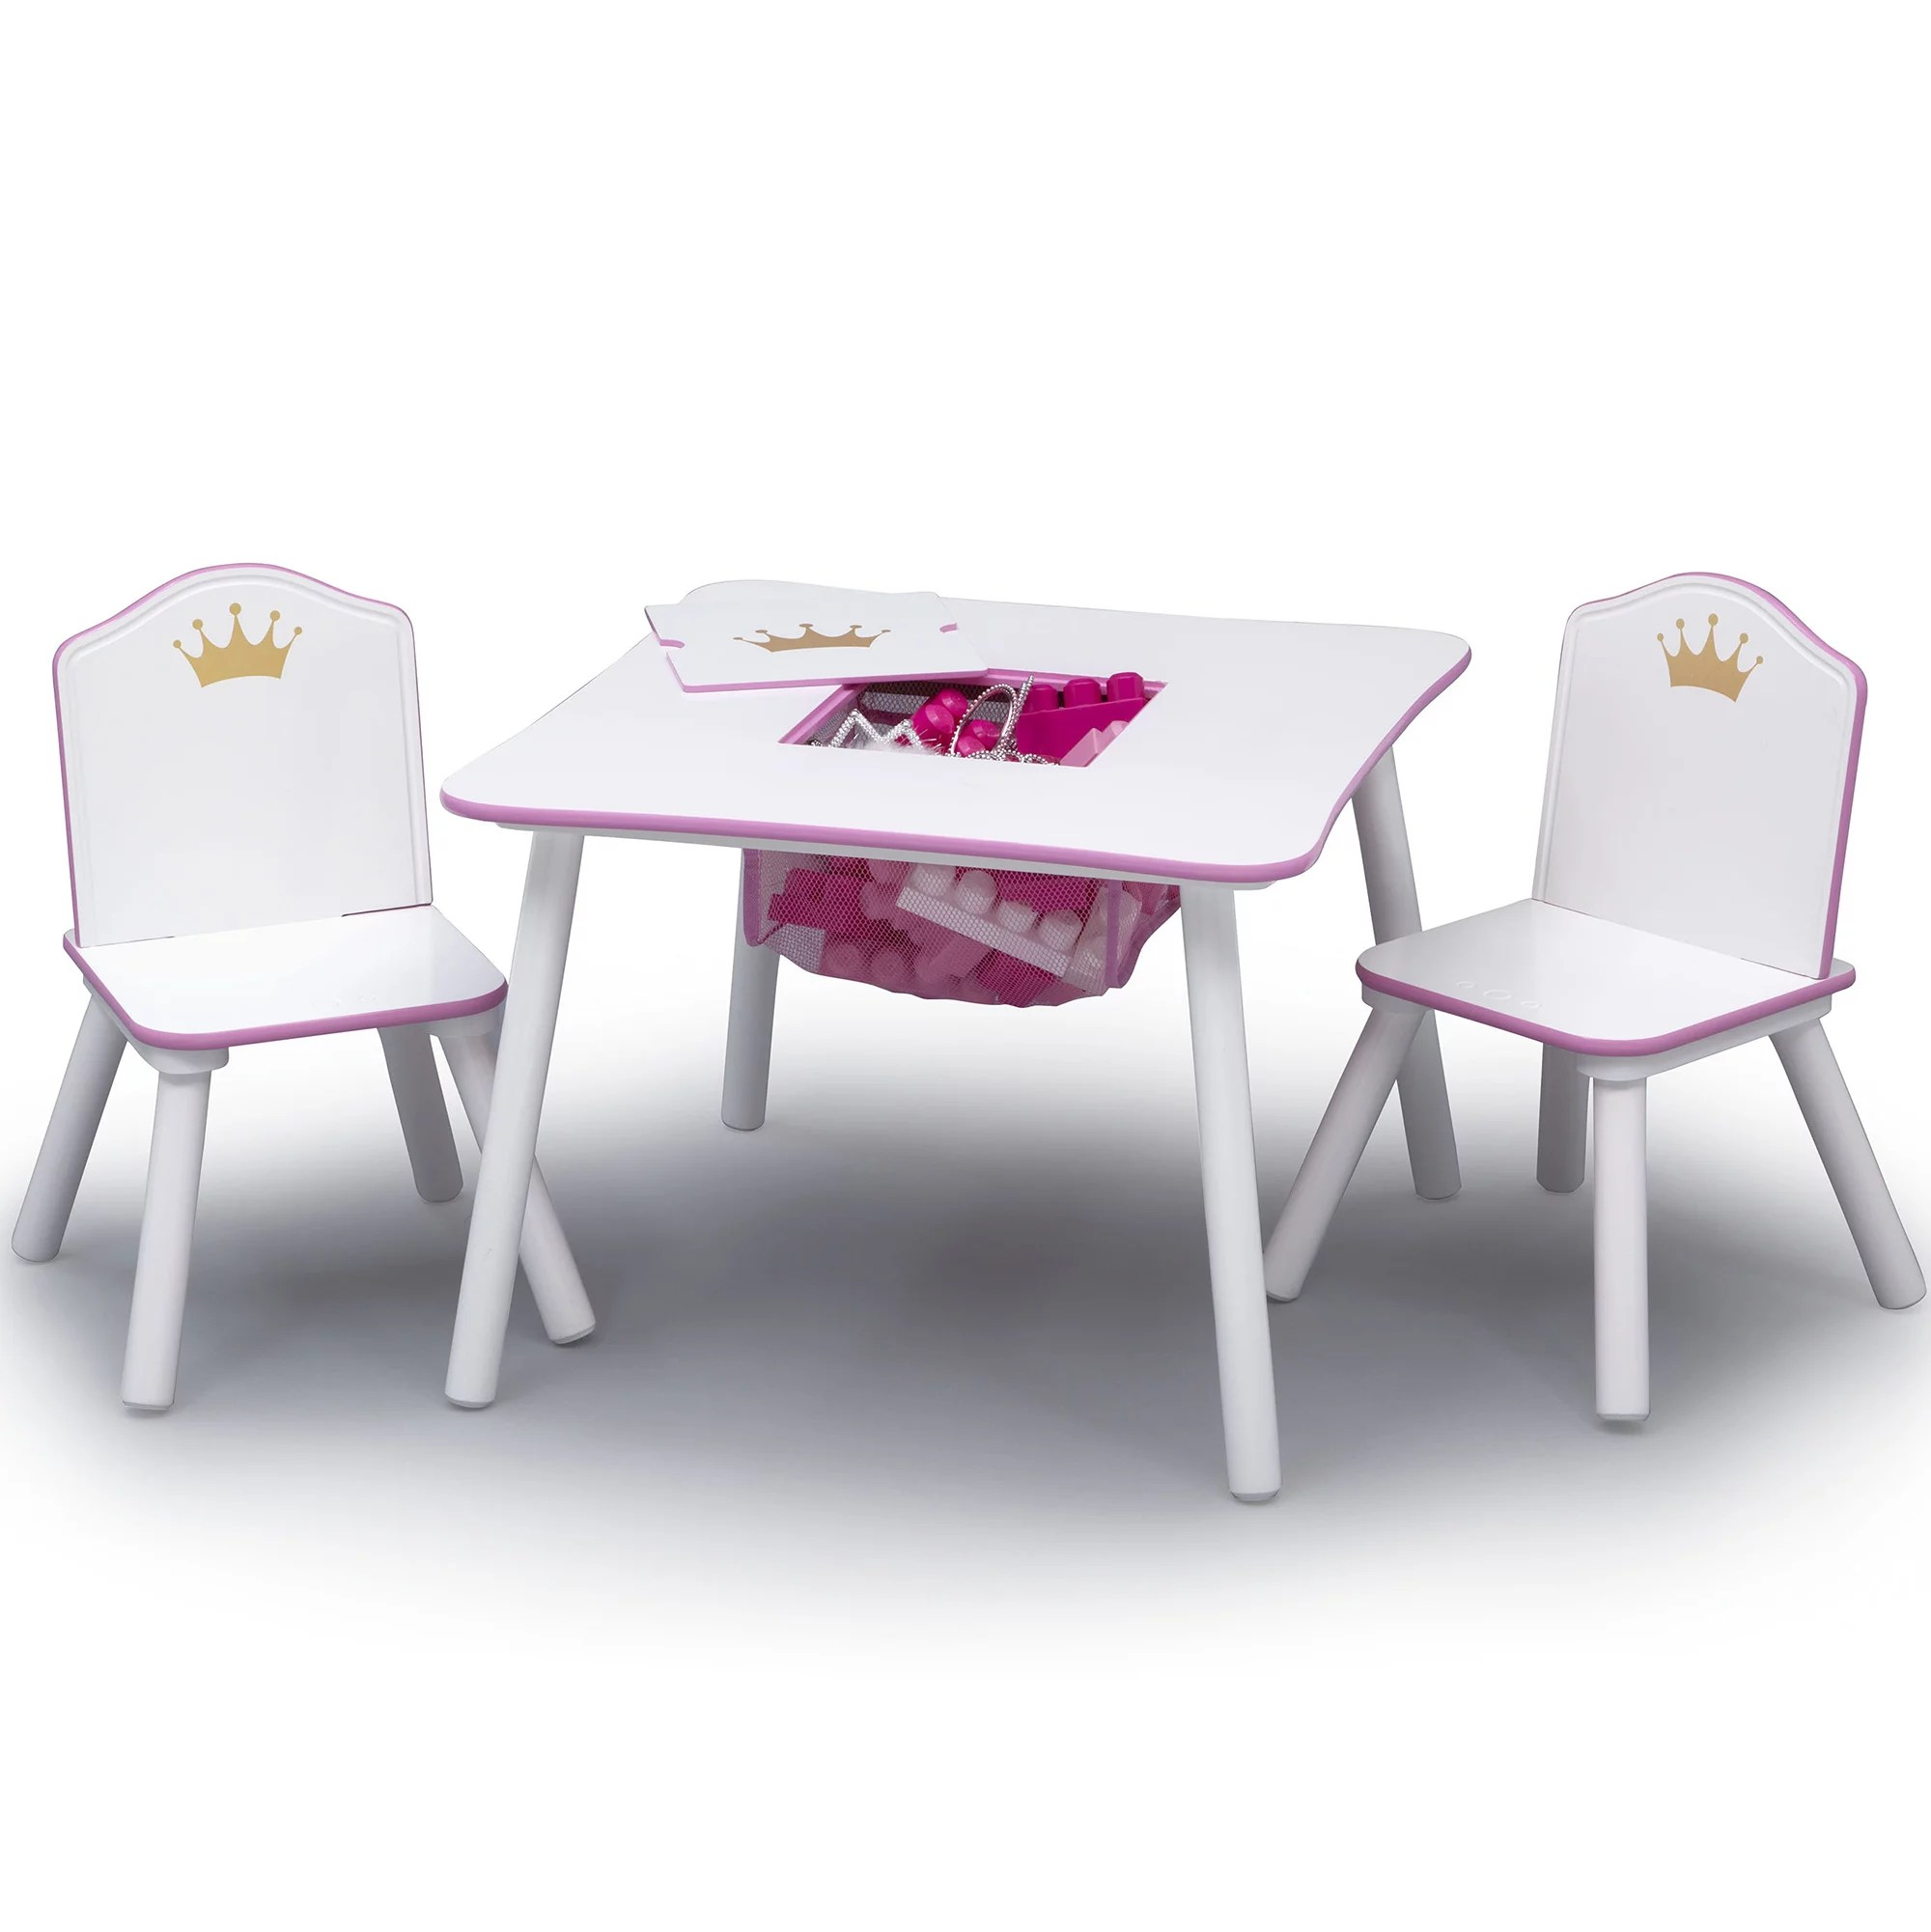 Childrens Table And Chair Set Delta Children Princess Crown Kids Table And Chair Set With Storage White Pink